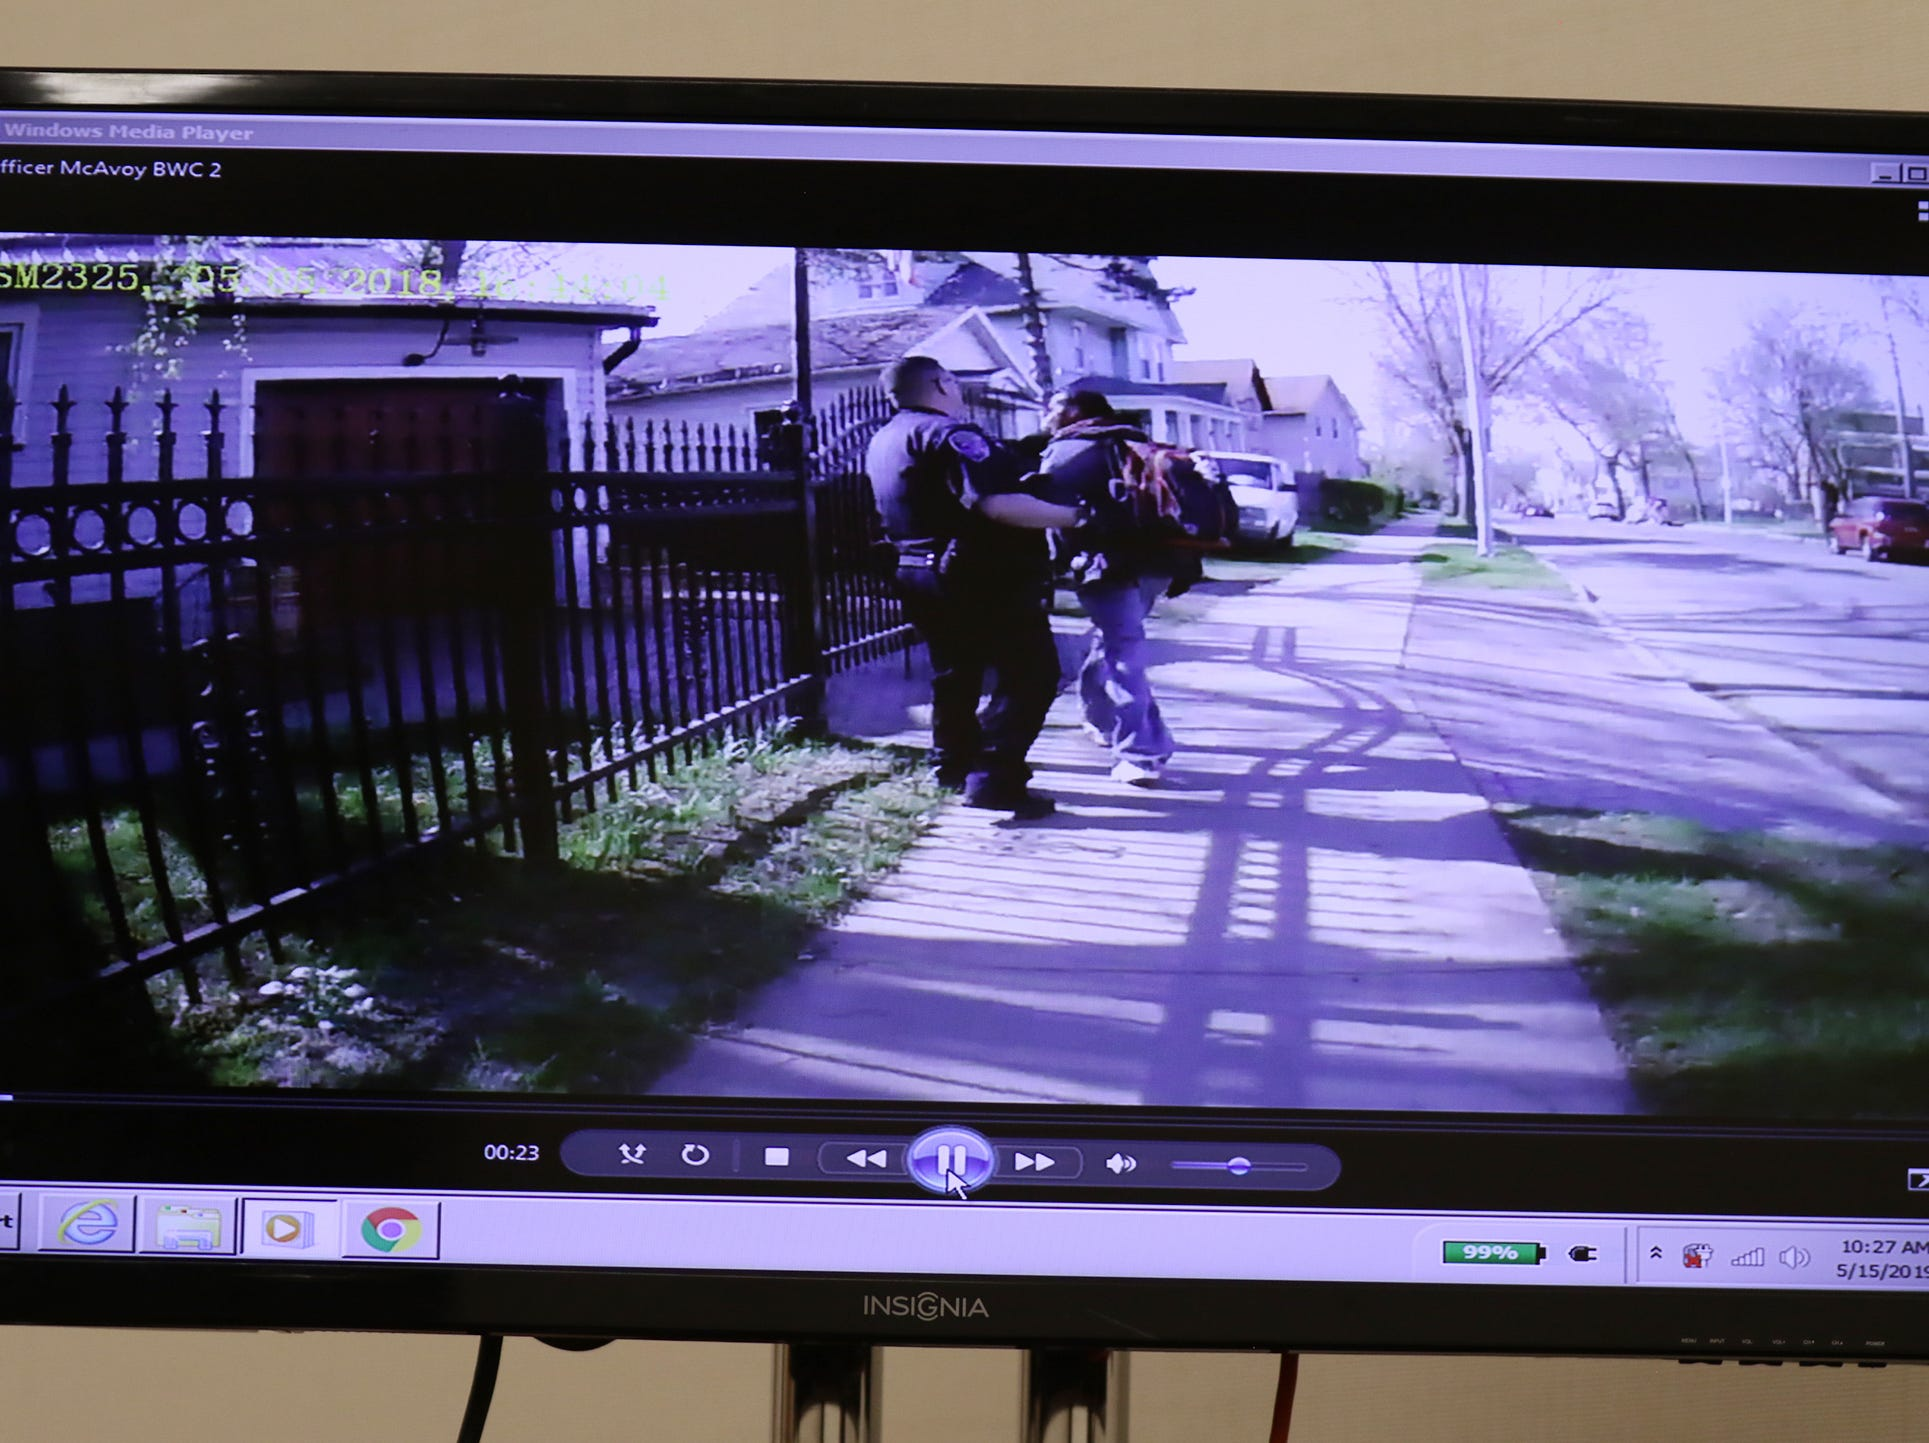 Rochester Police Officer Spenser McAvoy's body camera shows Officer Michael Sippel reaching out and stopping Christopher Pate.